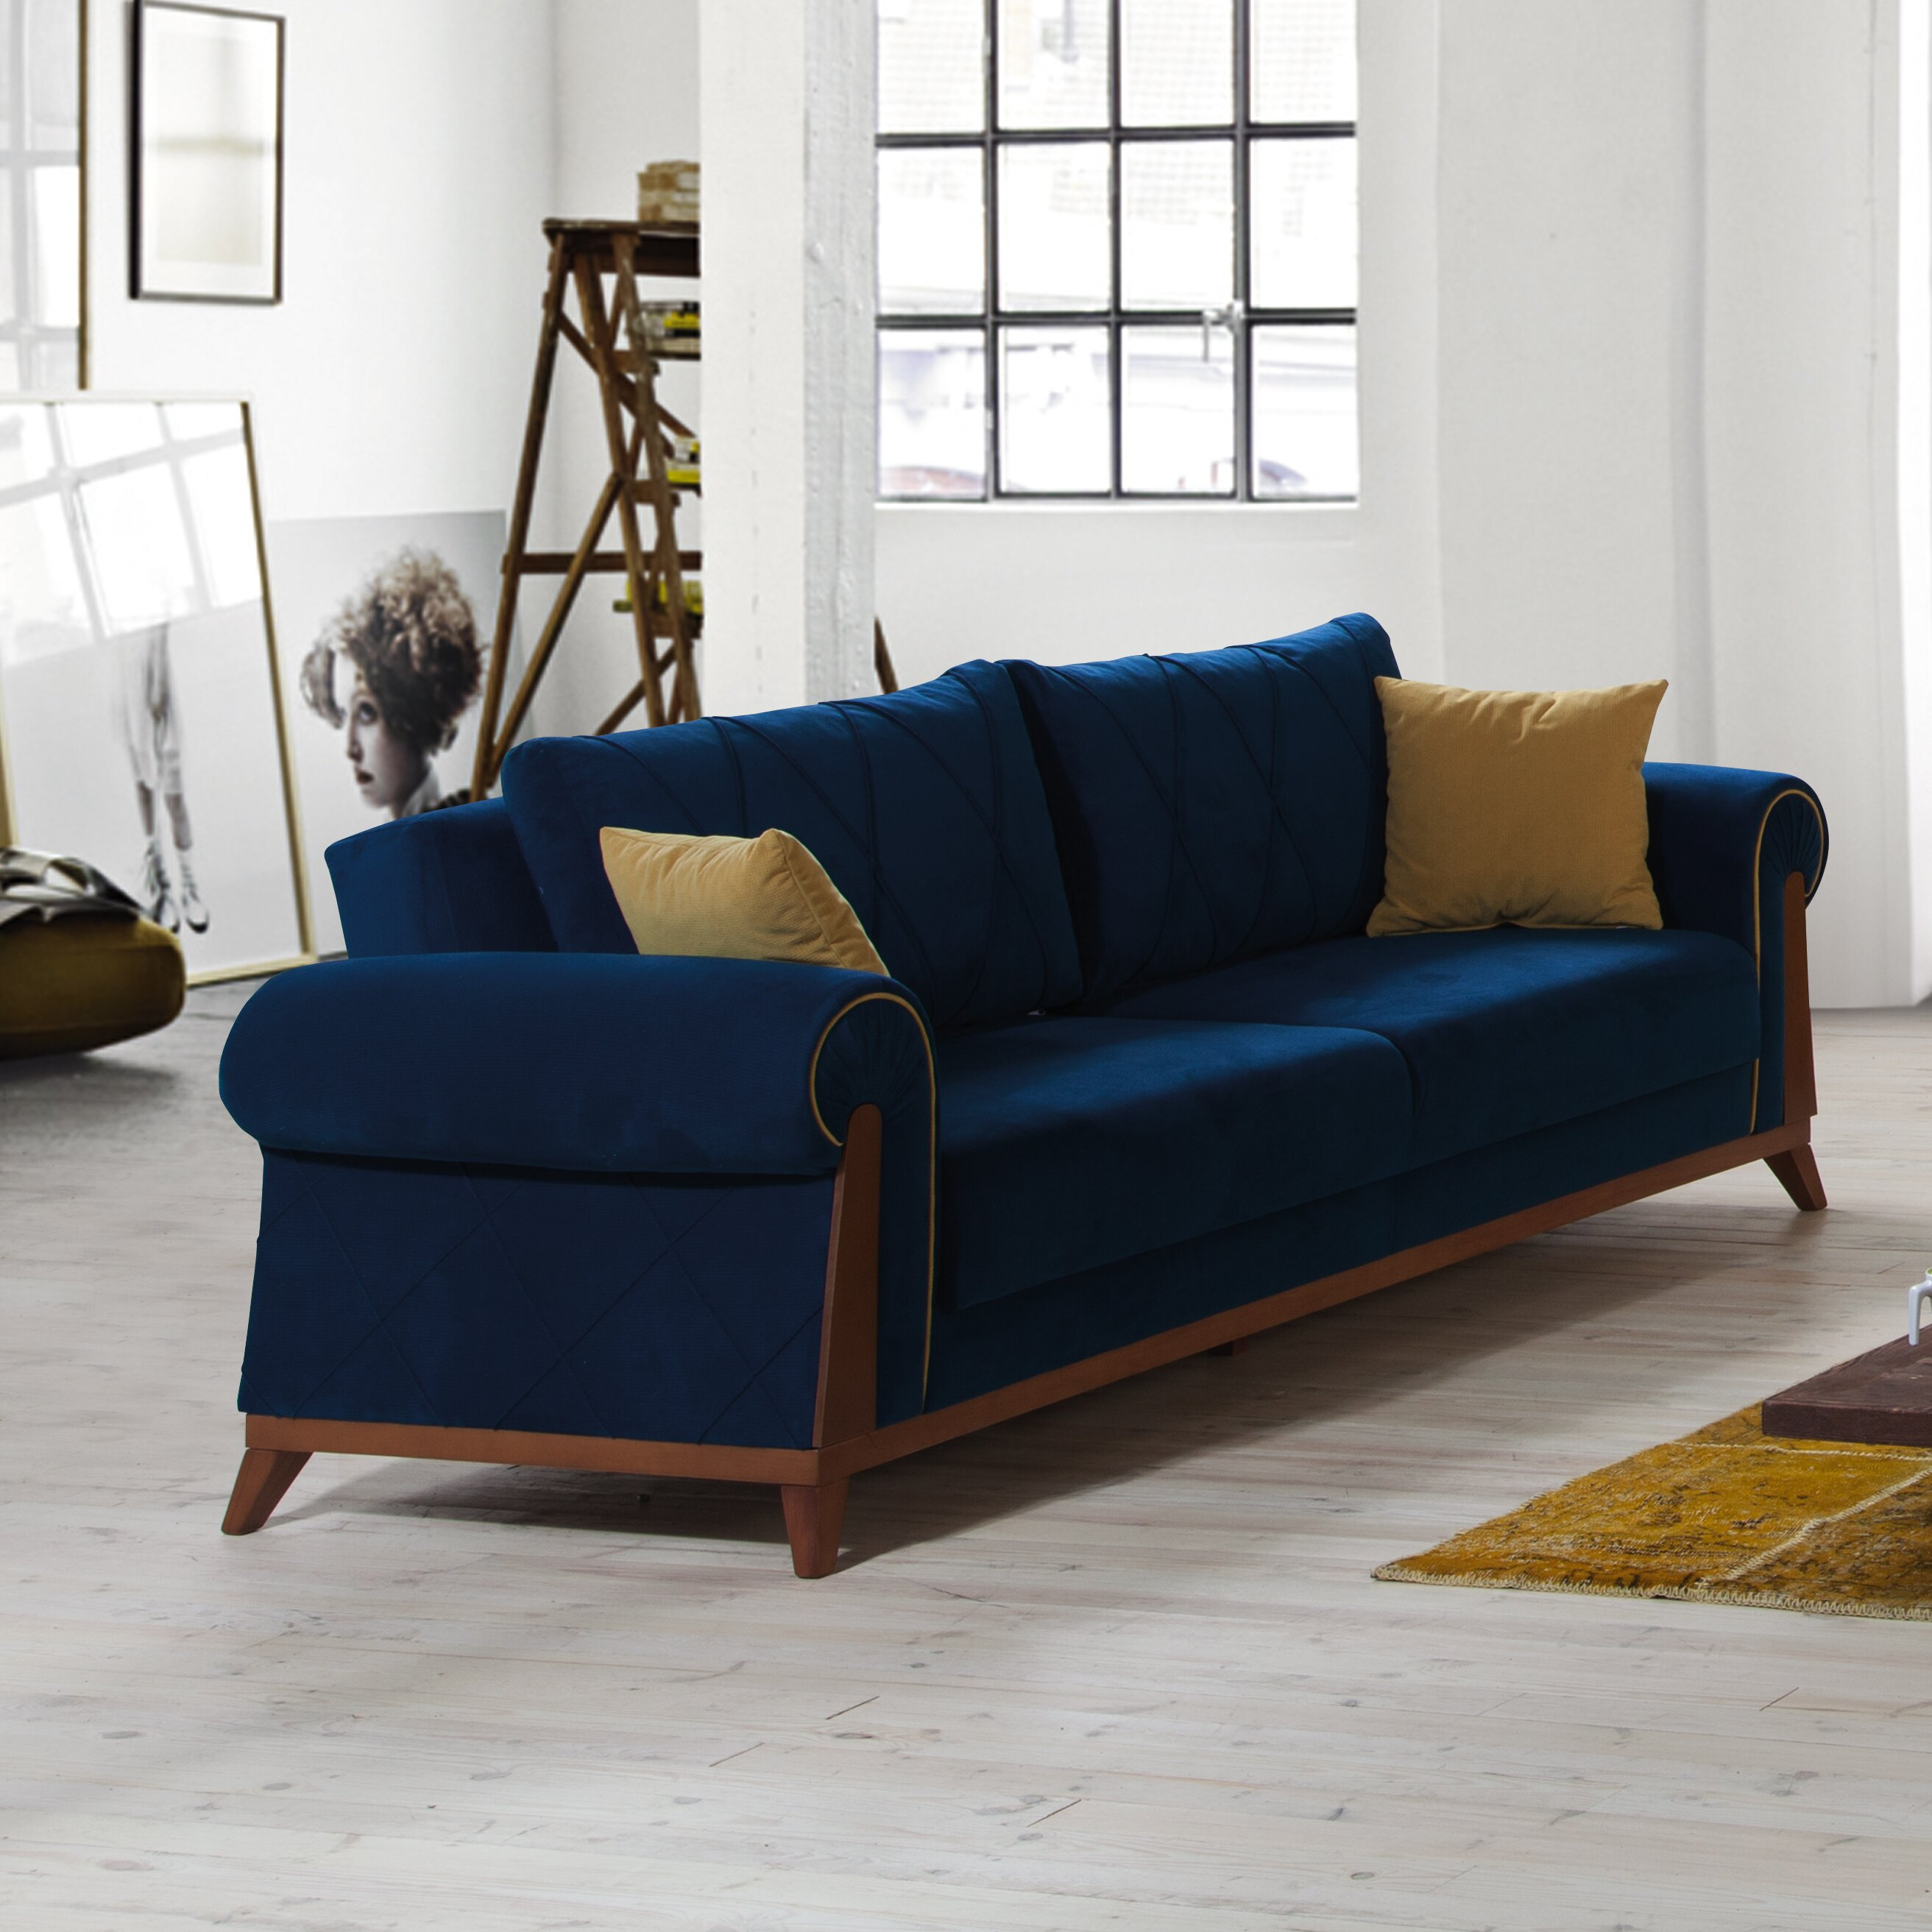 Perla Furniture London Sleeper Sofa & Reviews